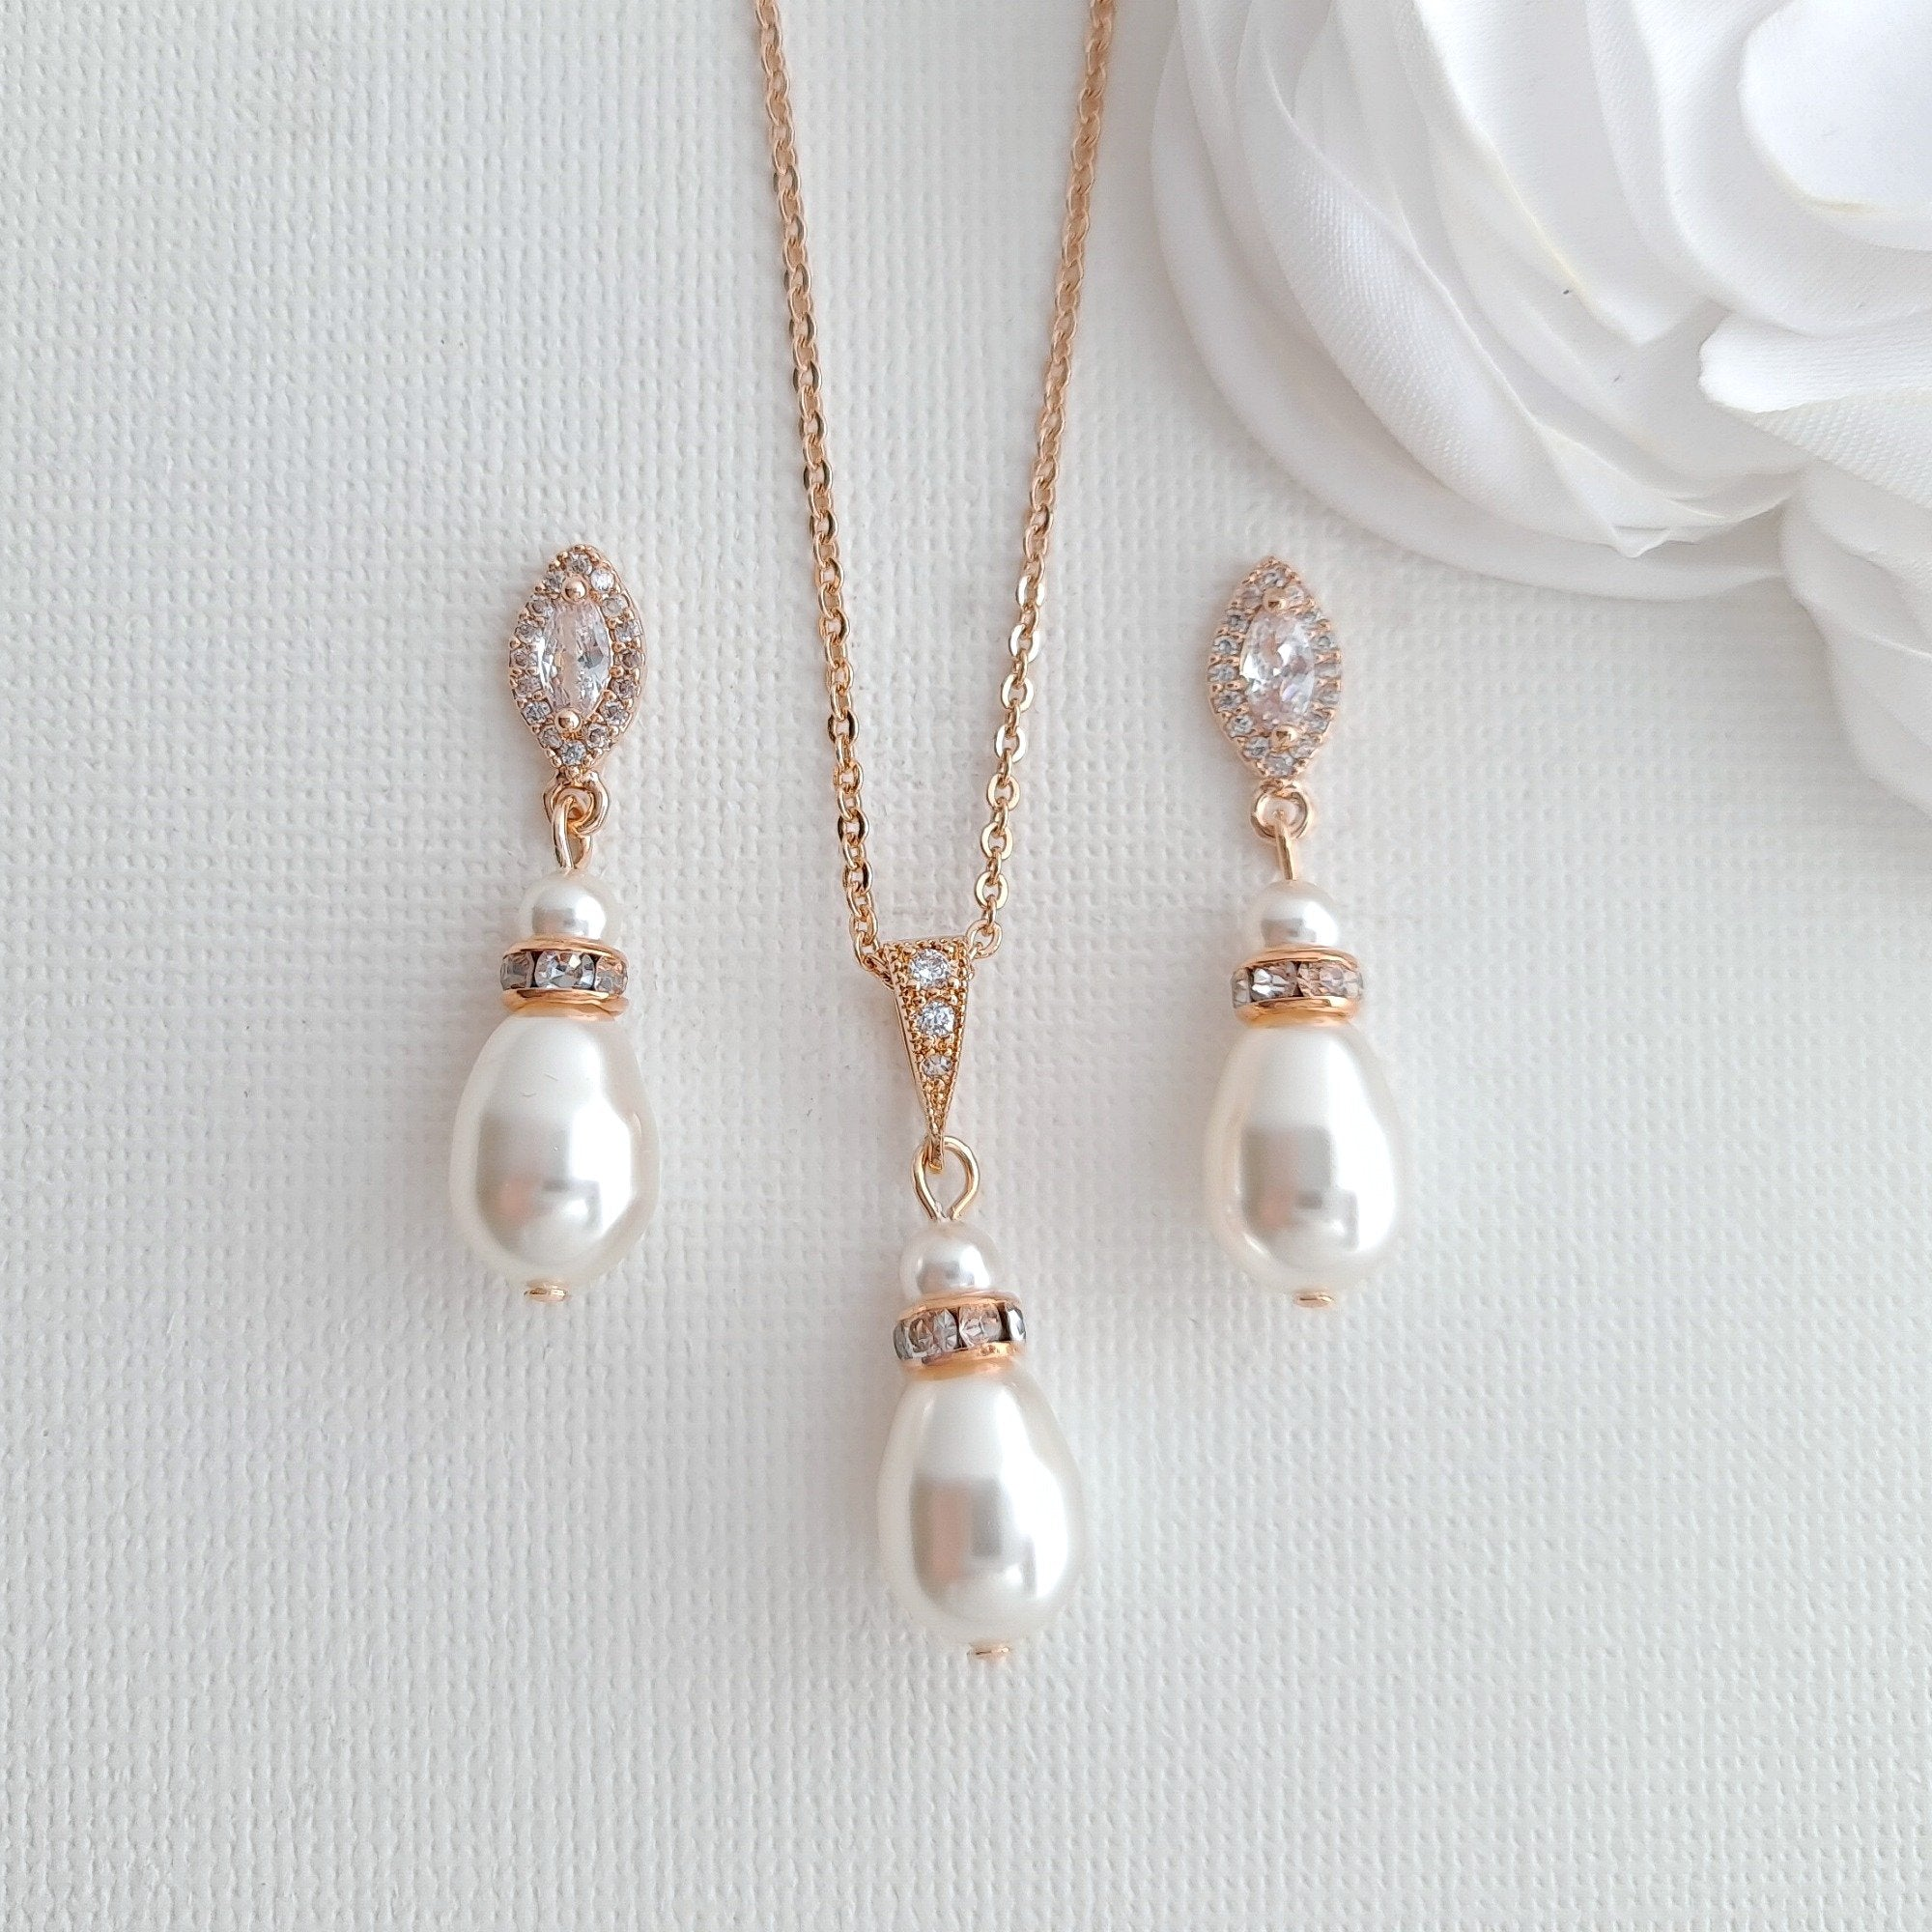 Bridesmaids Jewelry Gift under $50,Pearl Earrings Necklace Set- Ella